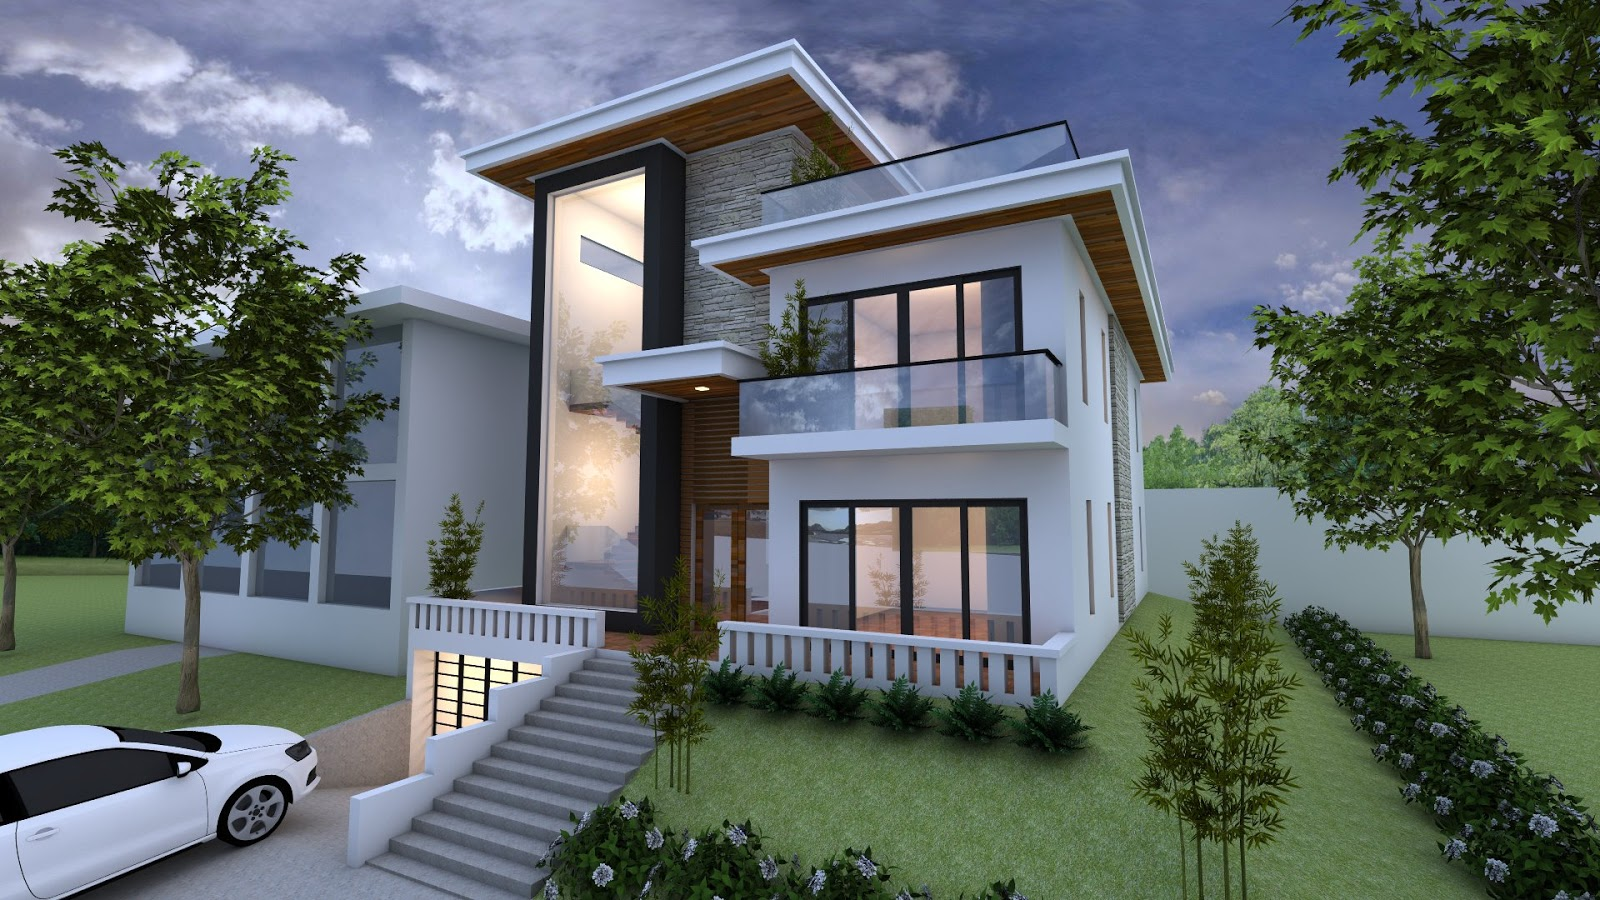 Sketchup Exterior Villa Design Drawing From Elevation 3